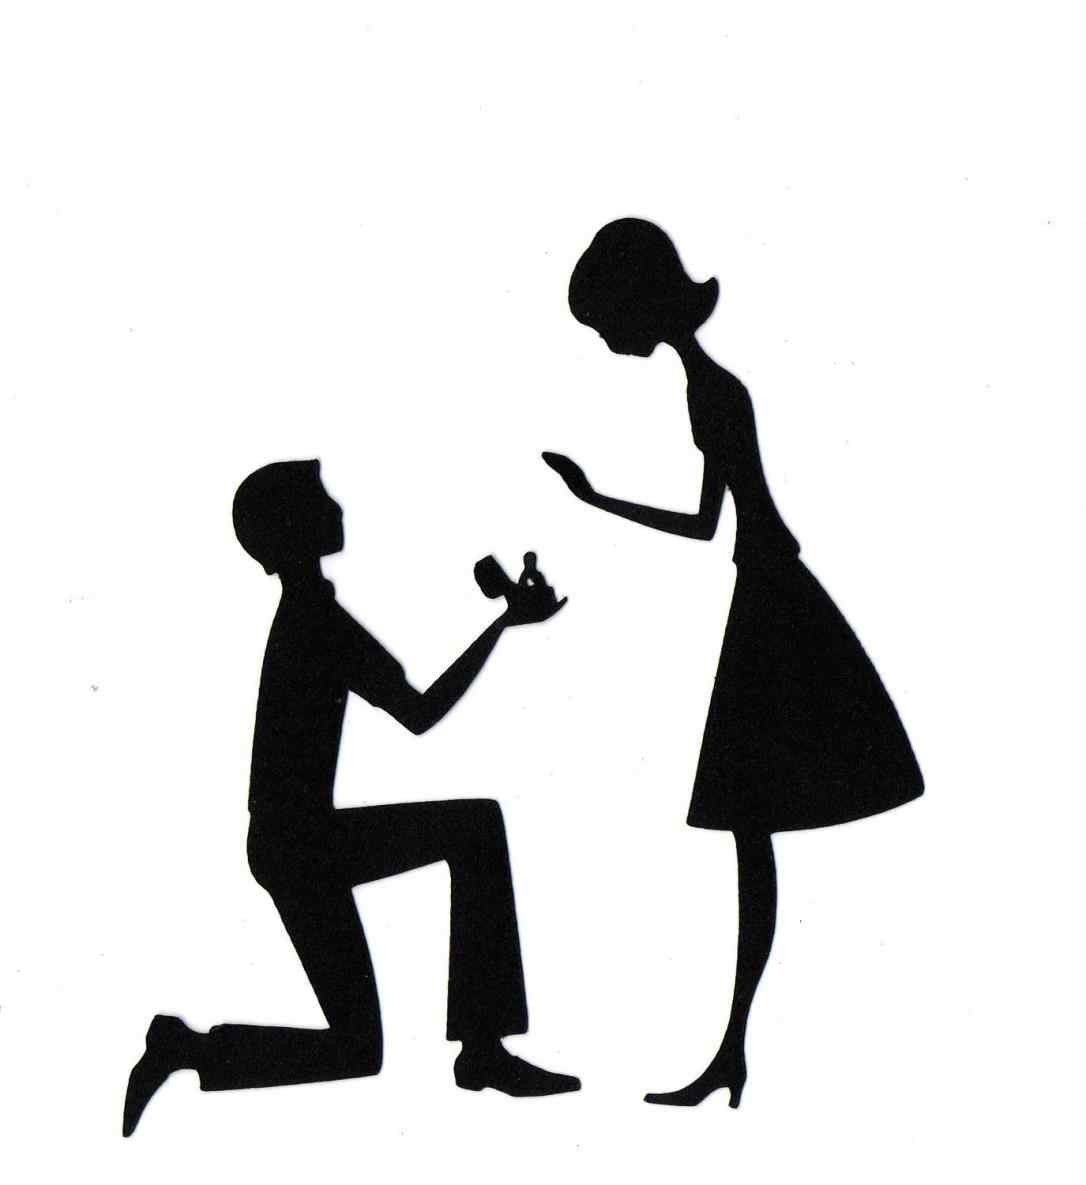 proposal silhouette clip art at getdrawings com free for personal rh getdrawings com marriage proposal clipart proposal clipart free